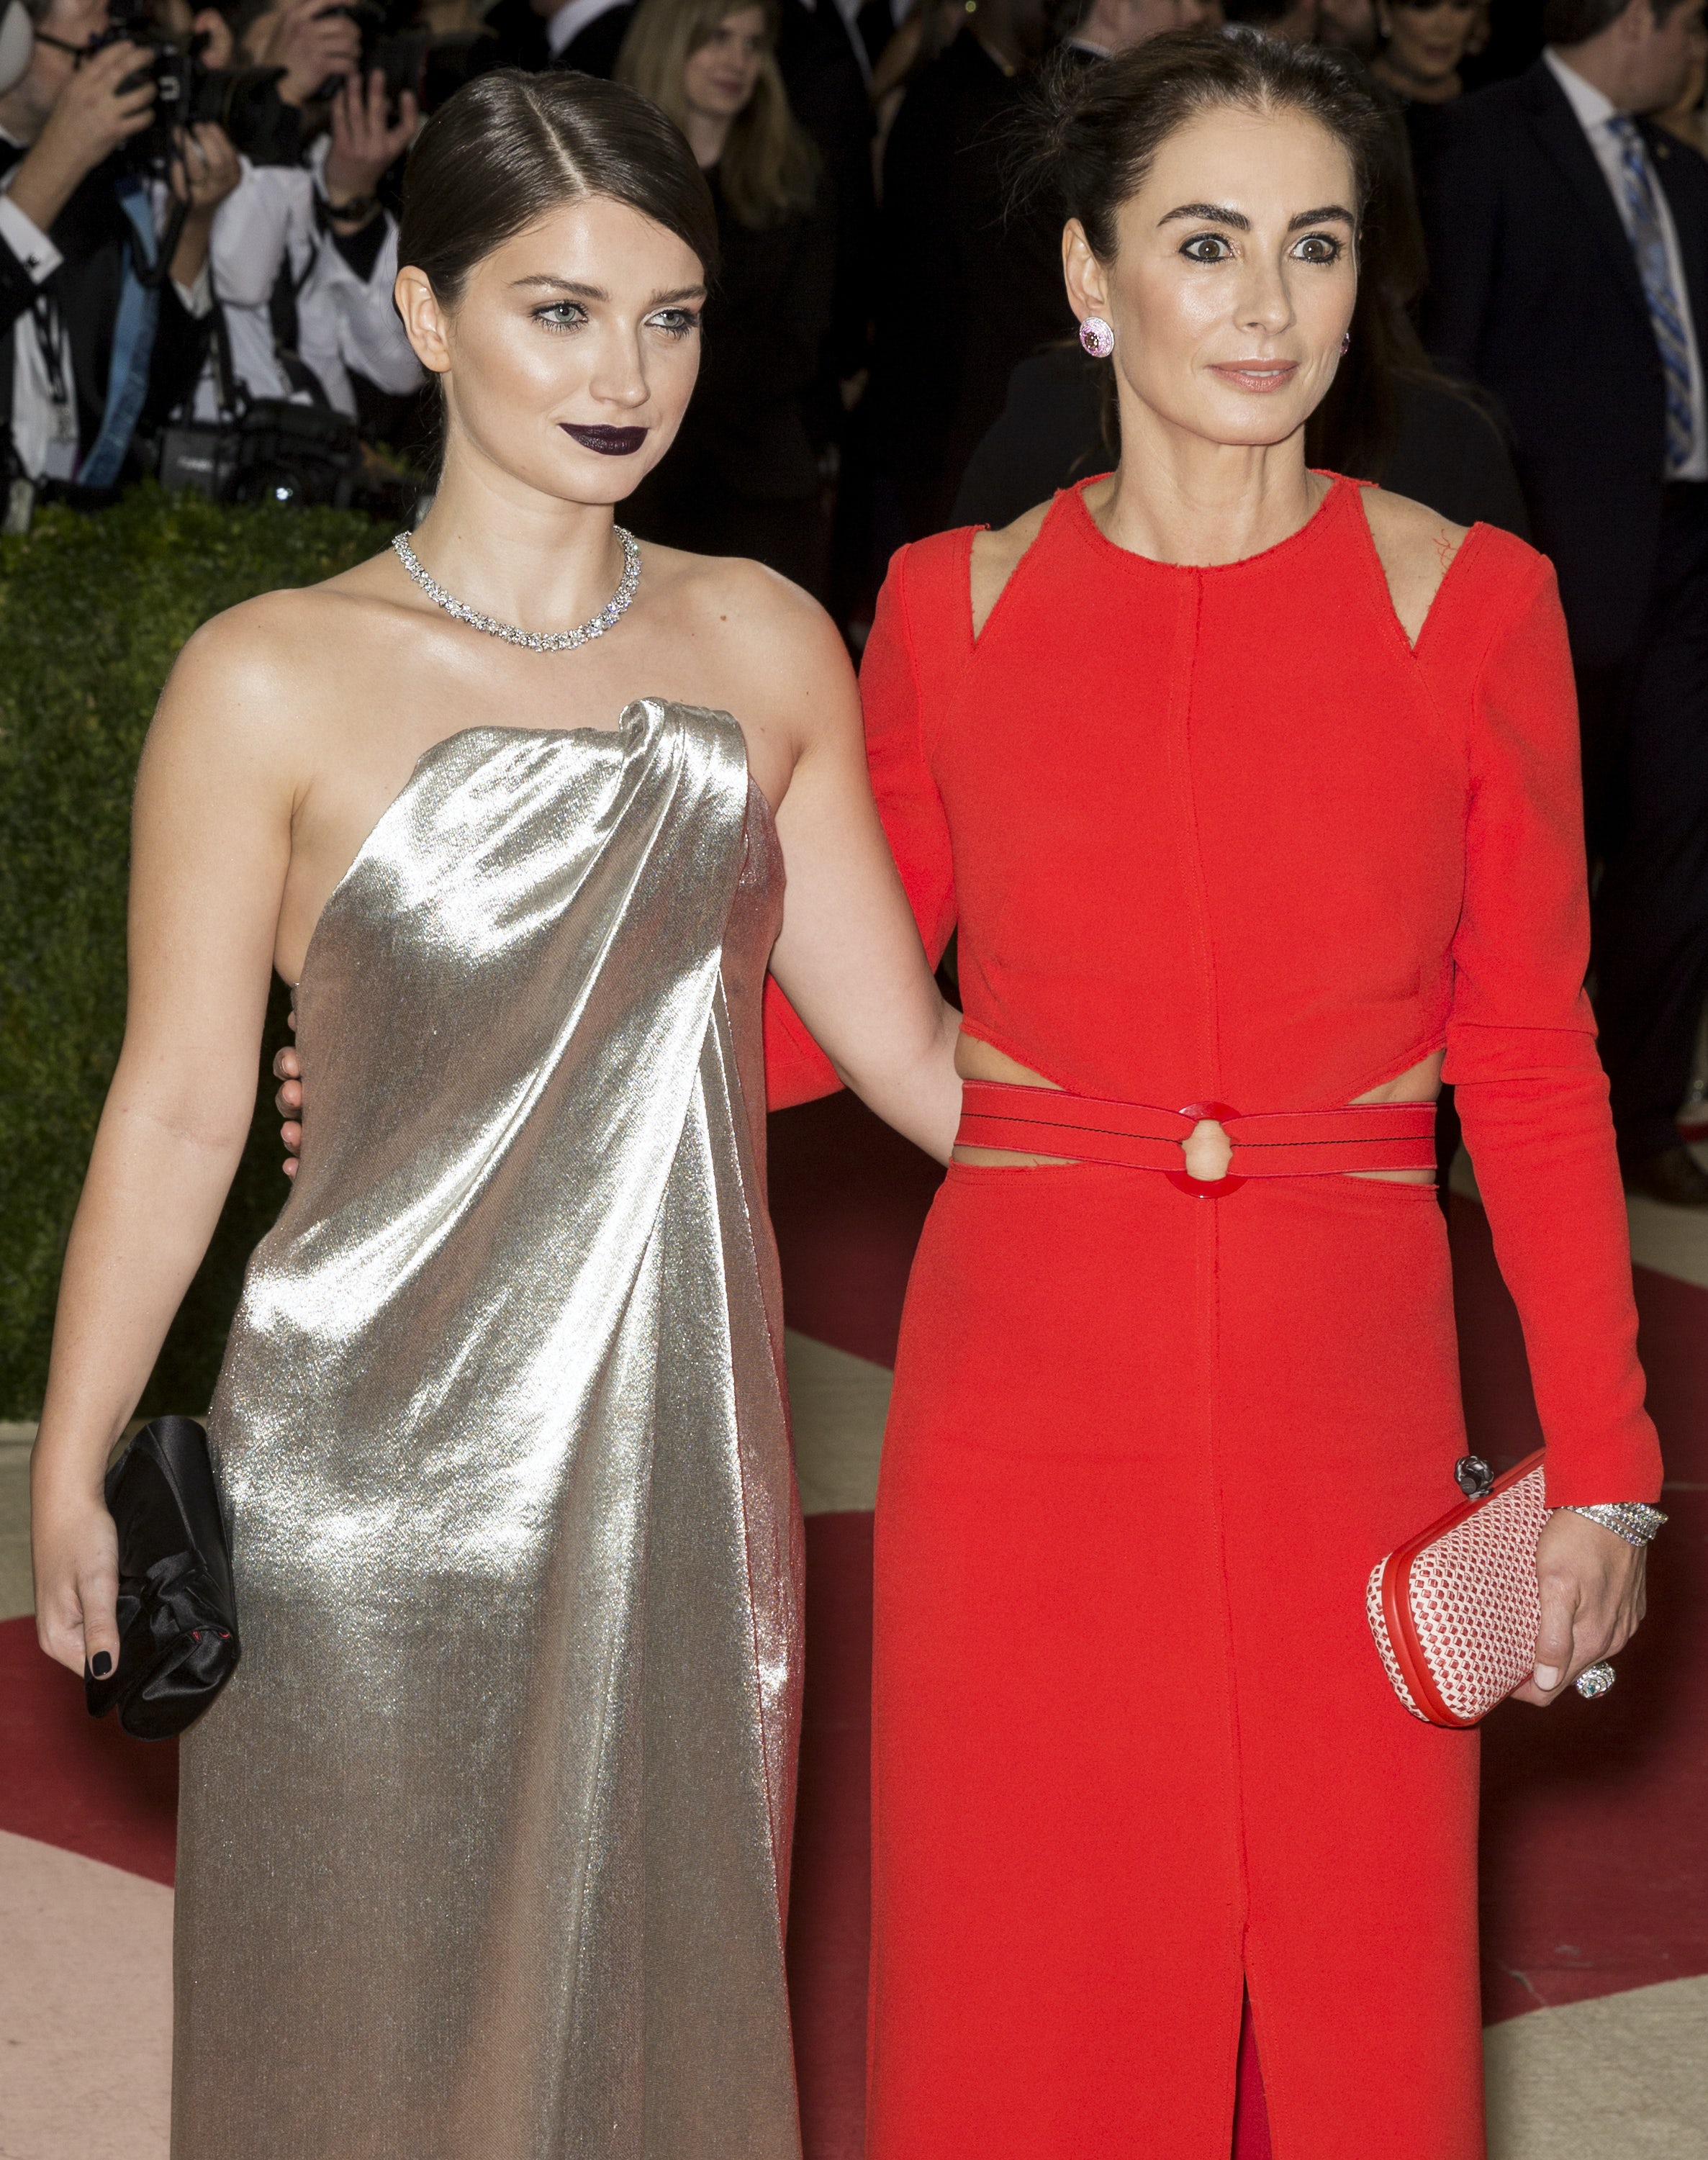 Francesca Amfitheatrof with Eve Hewson at the Met  Gala in May | Source: Shutterstock